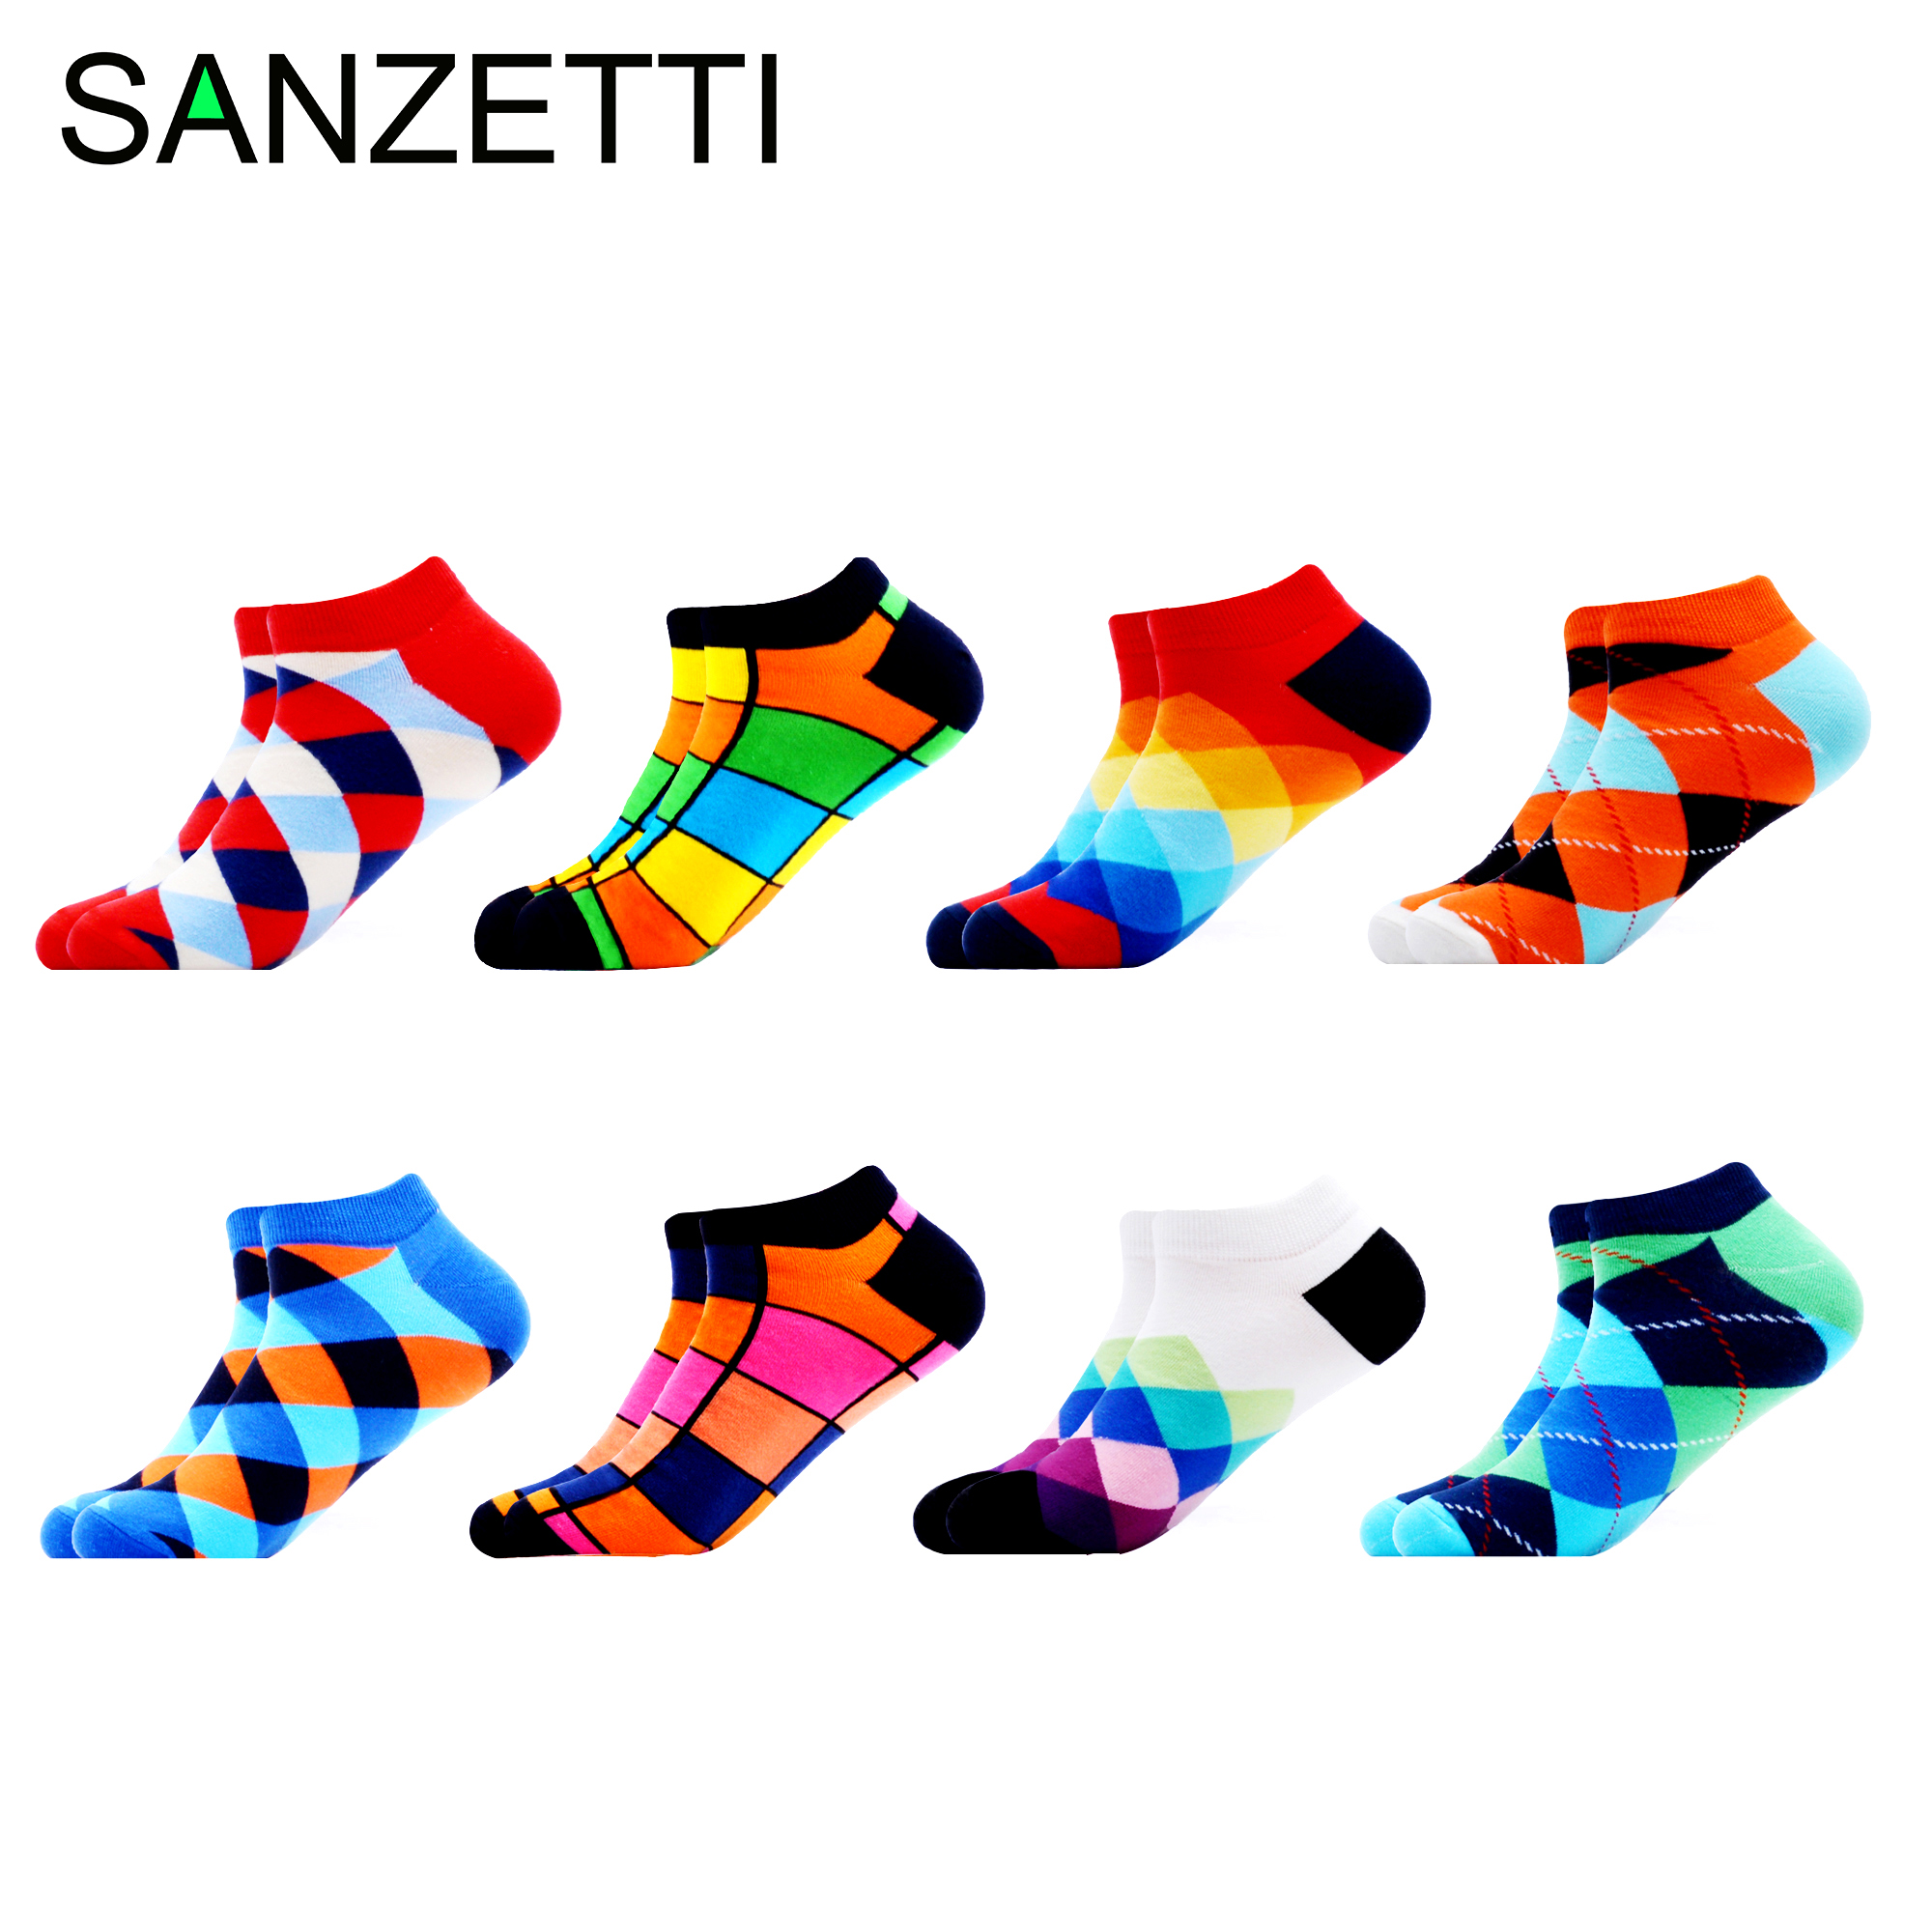 SANZETTI 8 Pairs/Lot Casual Novelty Men's Colorful Summer Combed Cotton Happy Ankle Socks Hip Hop Plaid Striped Dress Boat Socks